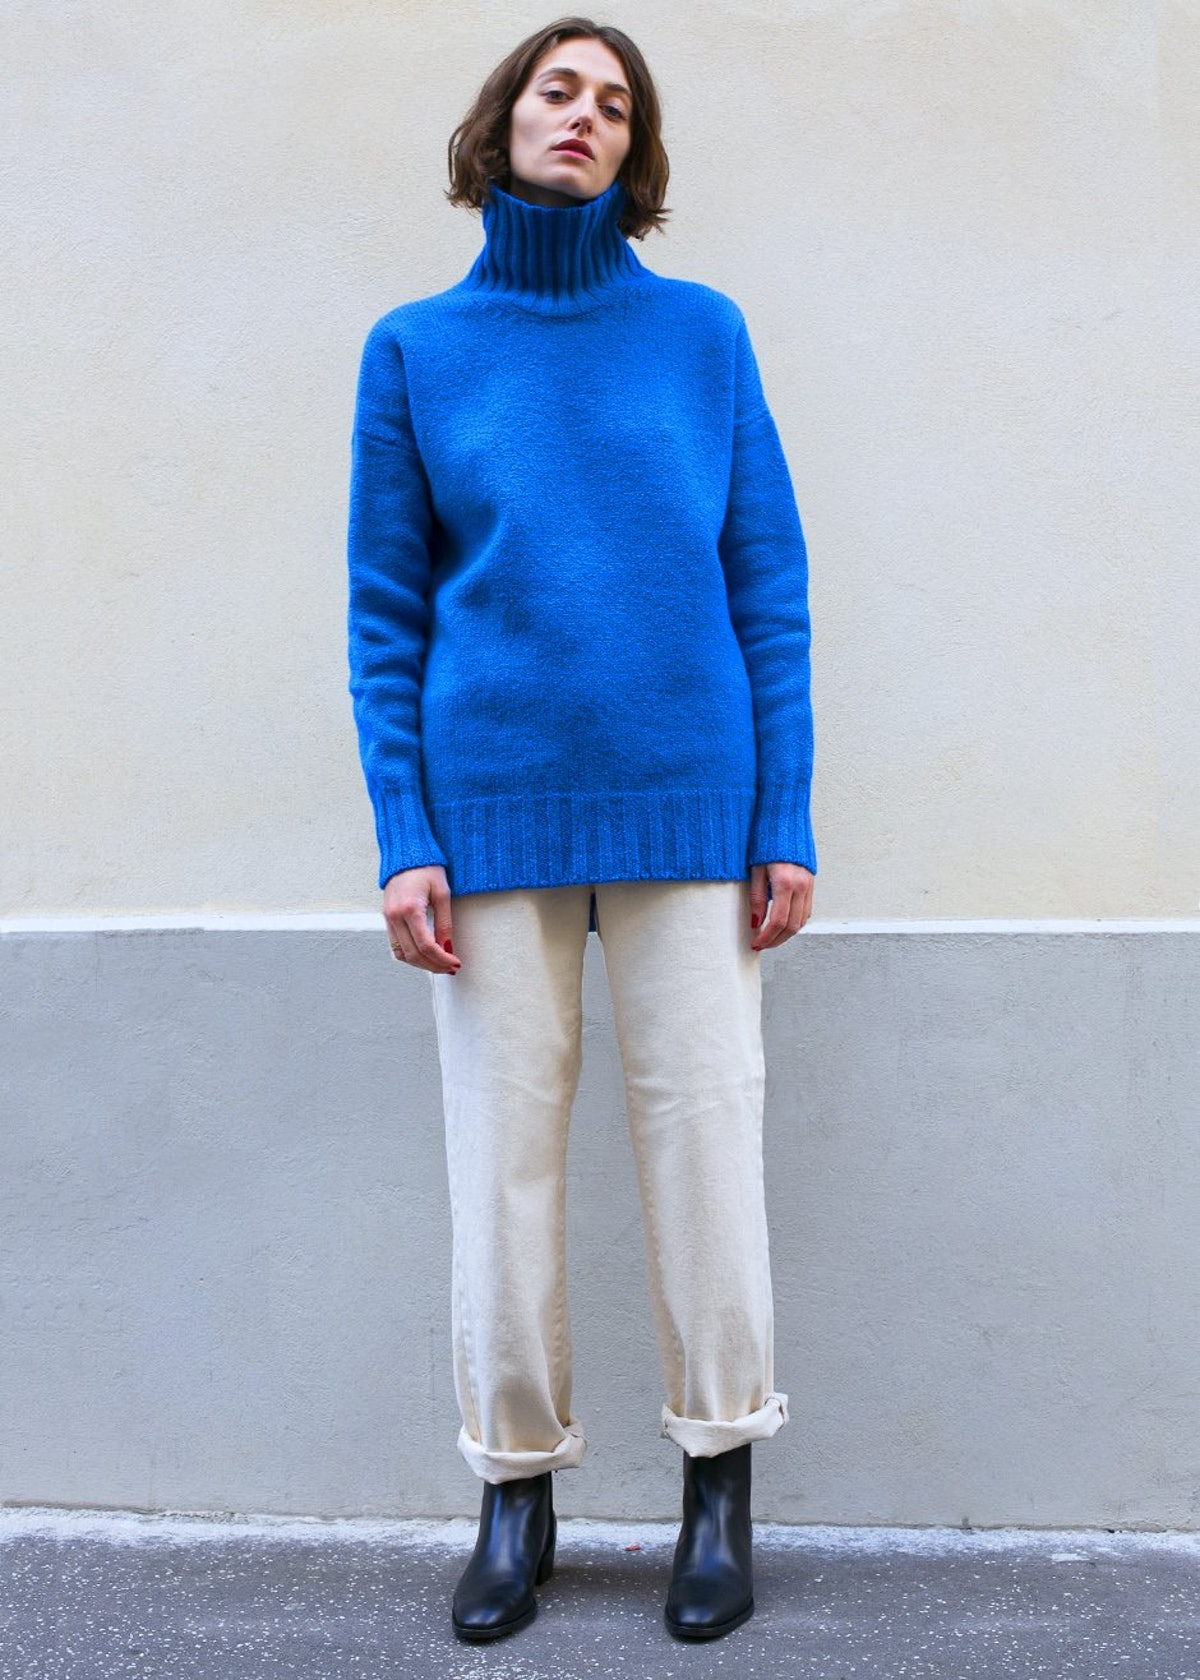 Hyde's Pullover Sweater in Blue by Rachel Comey